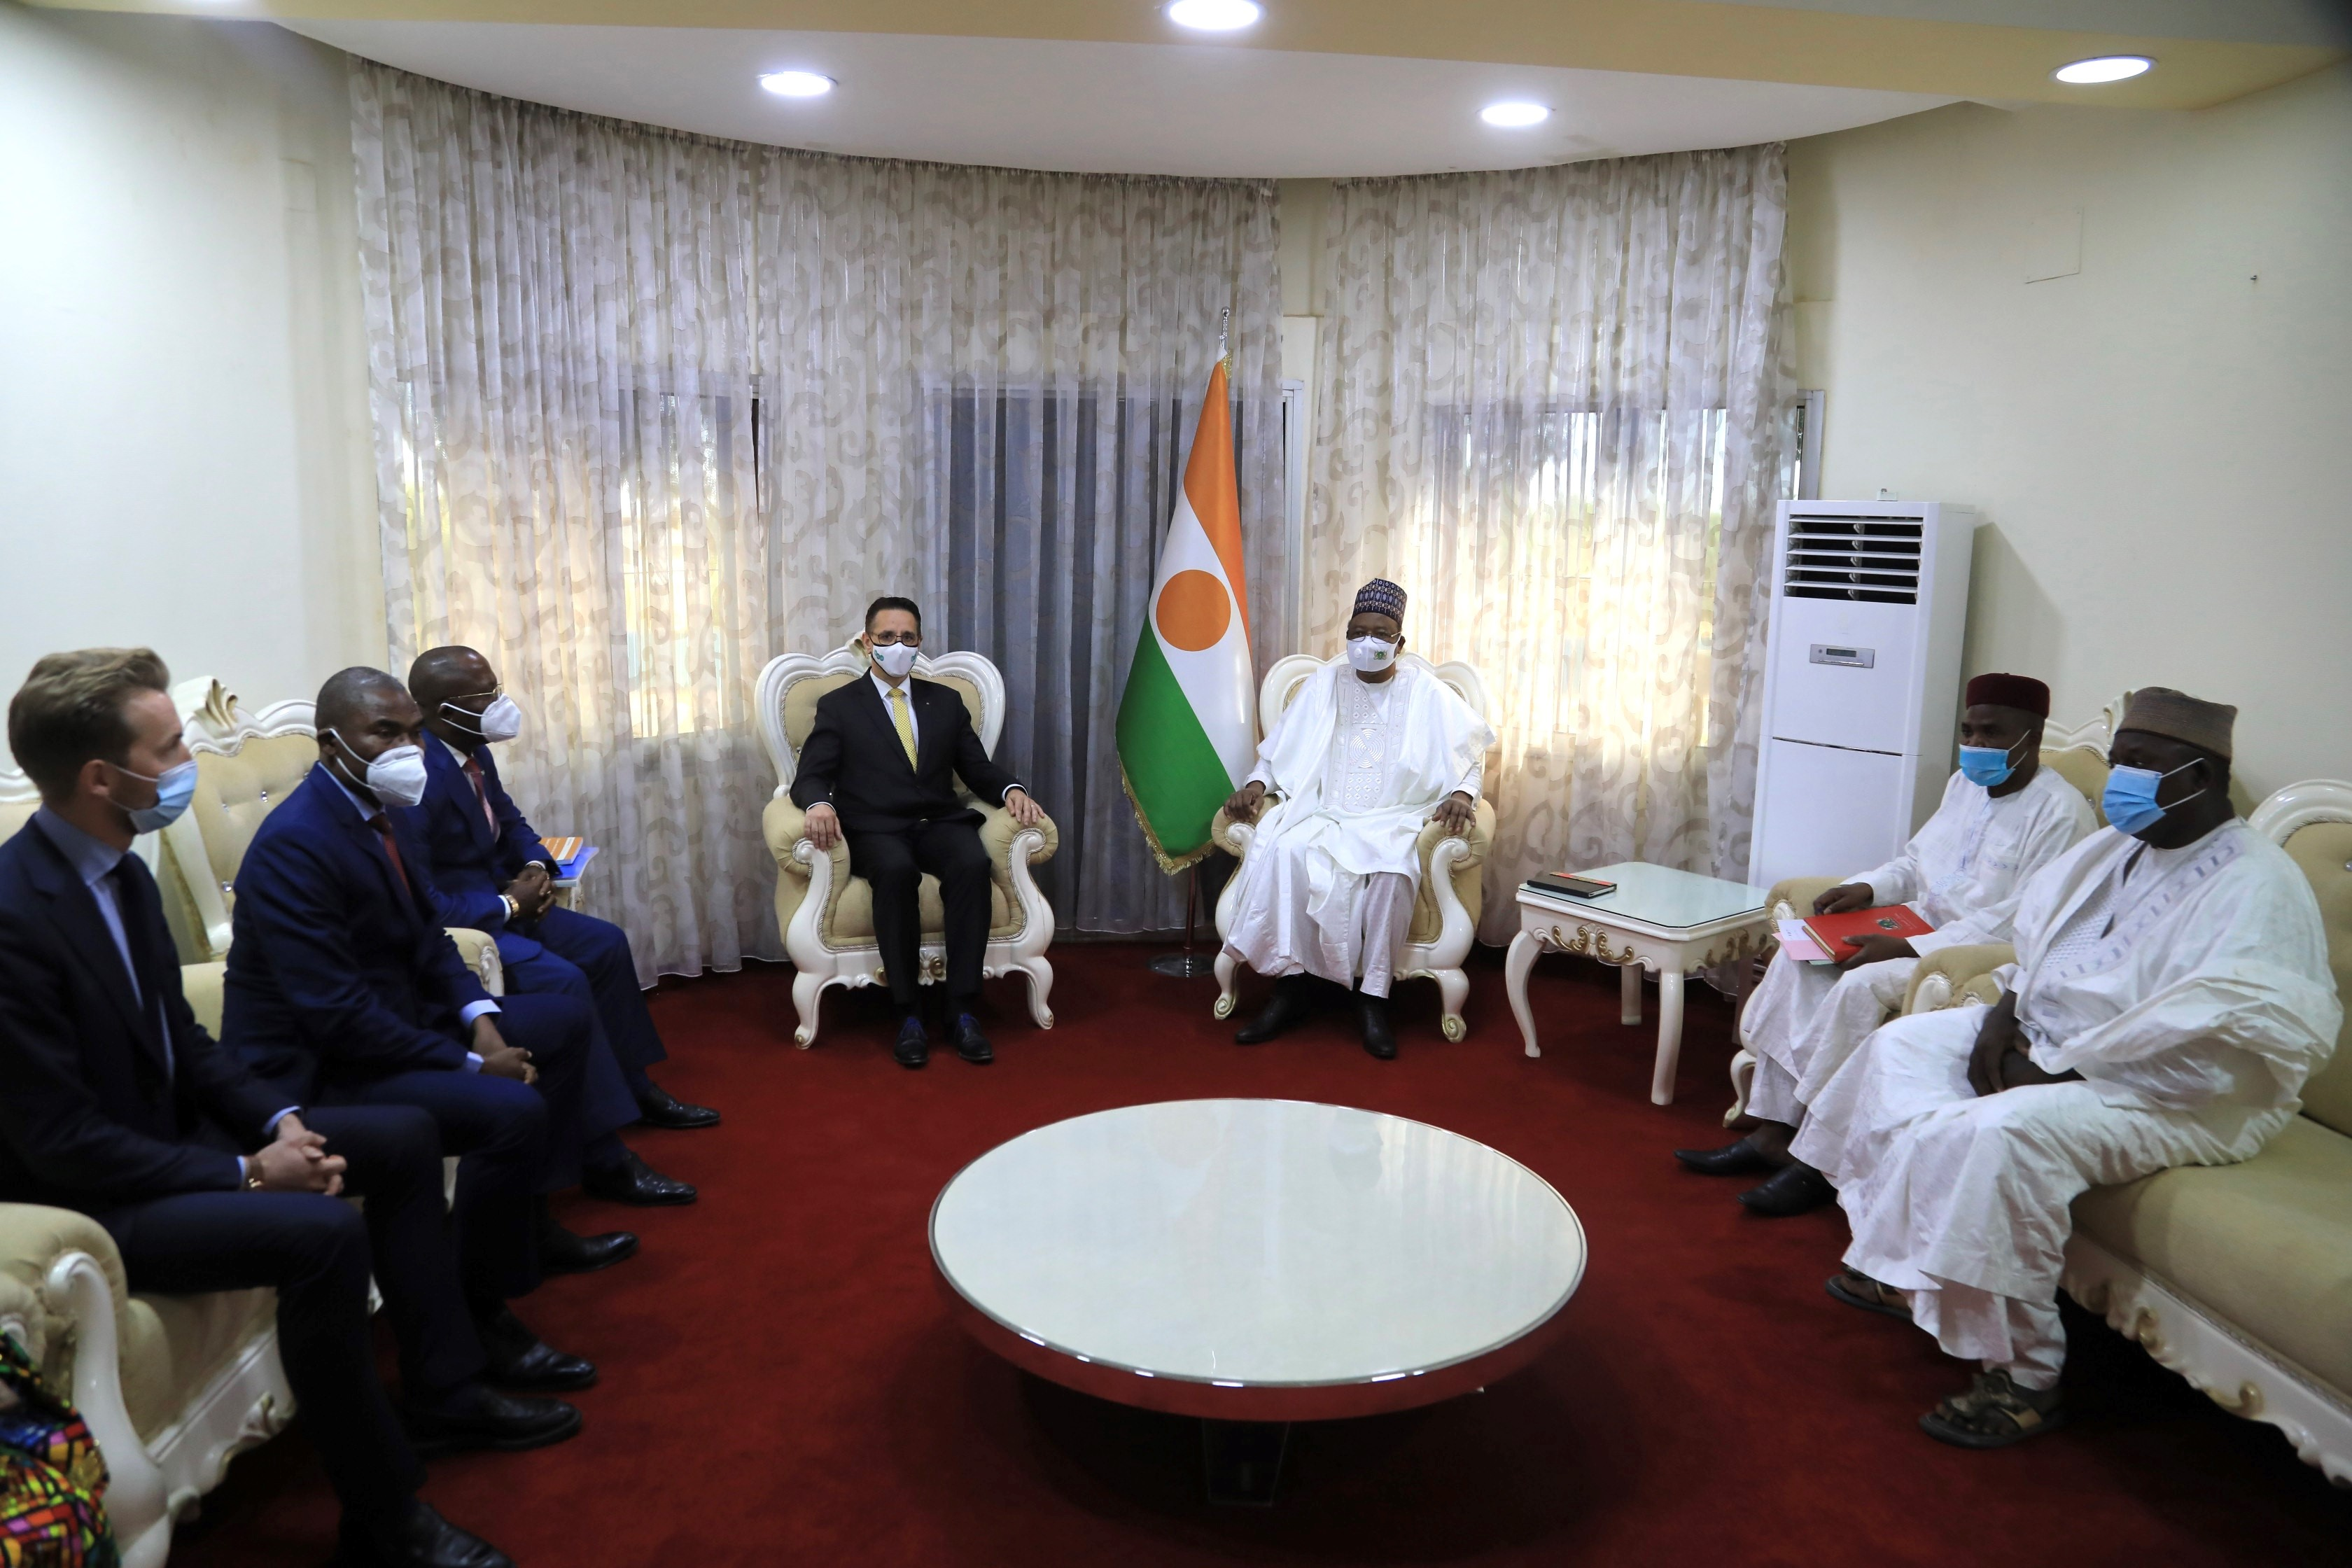 Meeting with H.E. the Prime Minister of the Republic of Niger